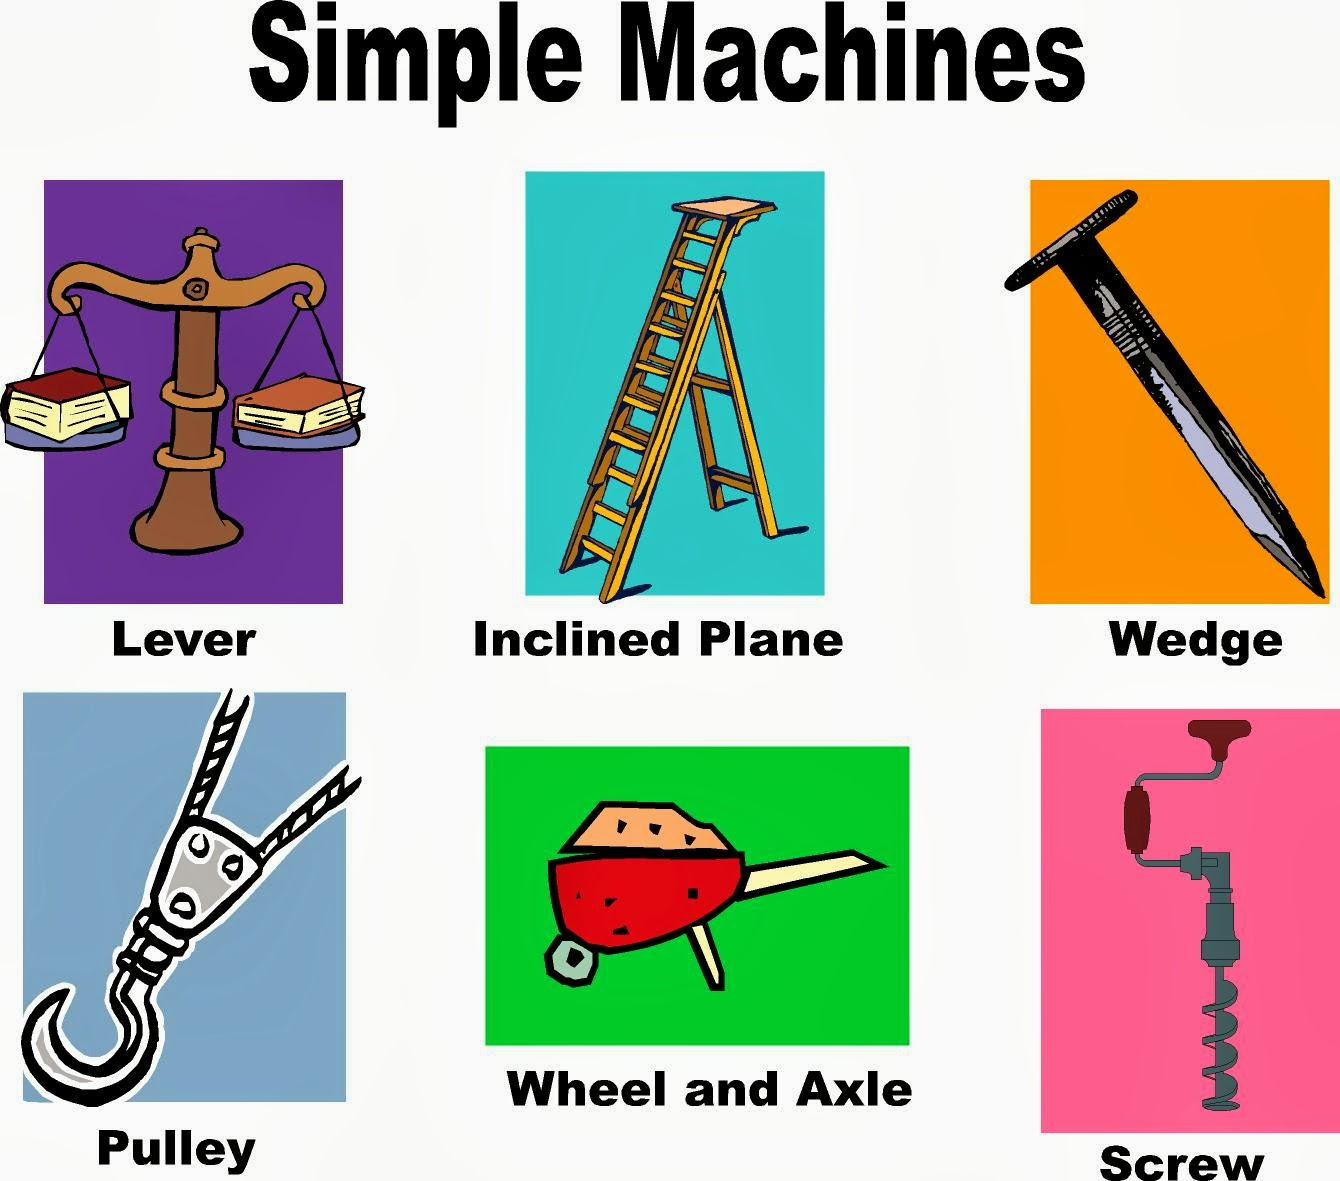 simple machines Simple machines: objectives: 1 identify the six simple machines 2 explain how each simple machine works 3 calculate the mechanical advantage for.